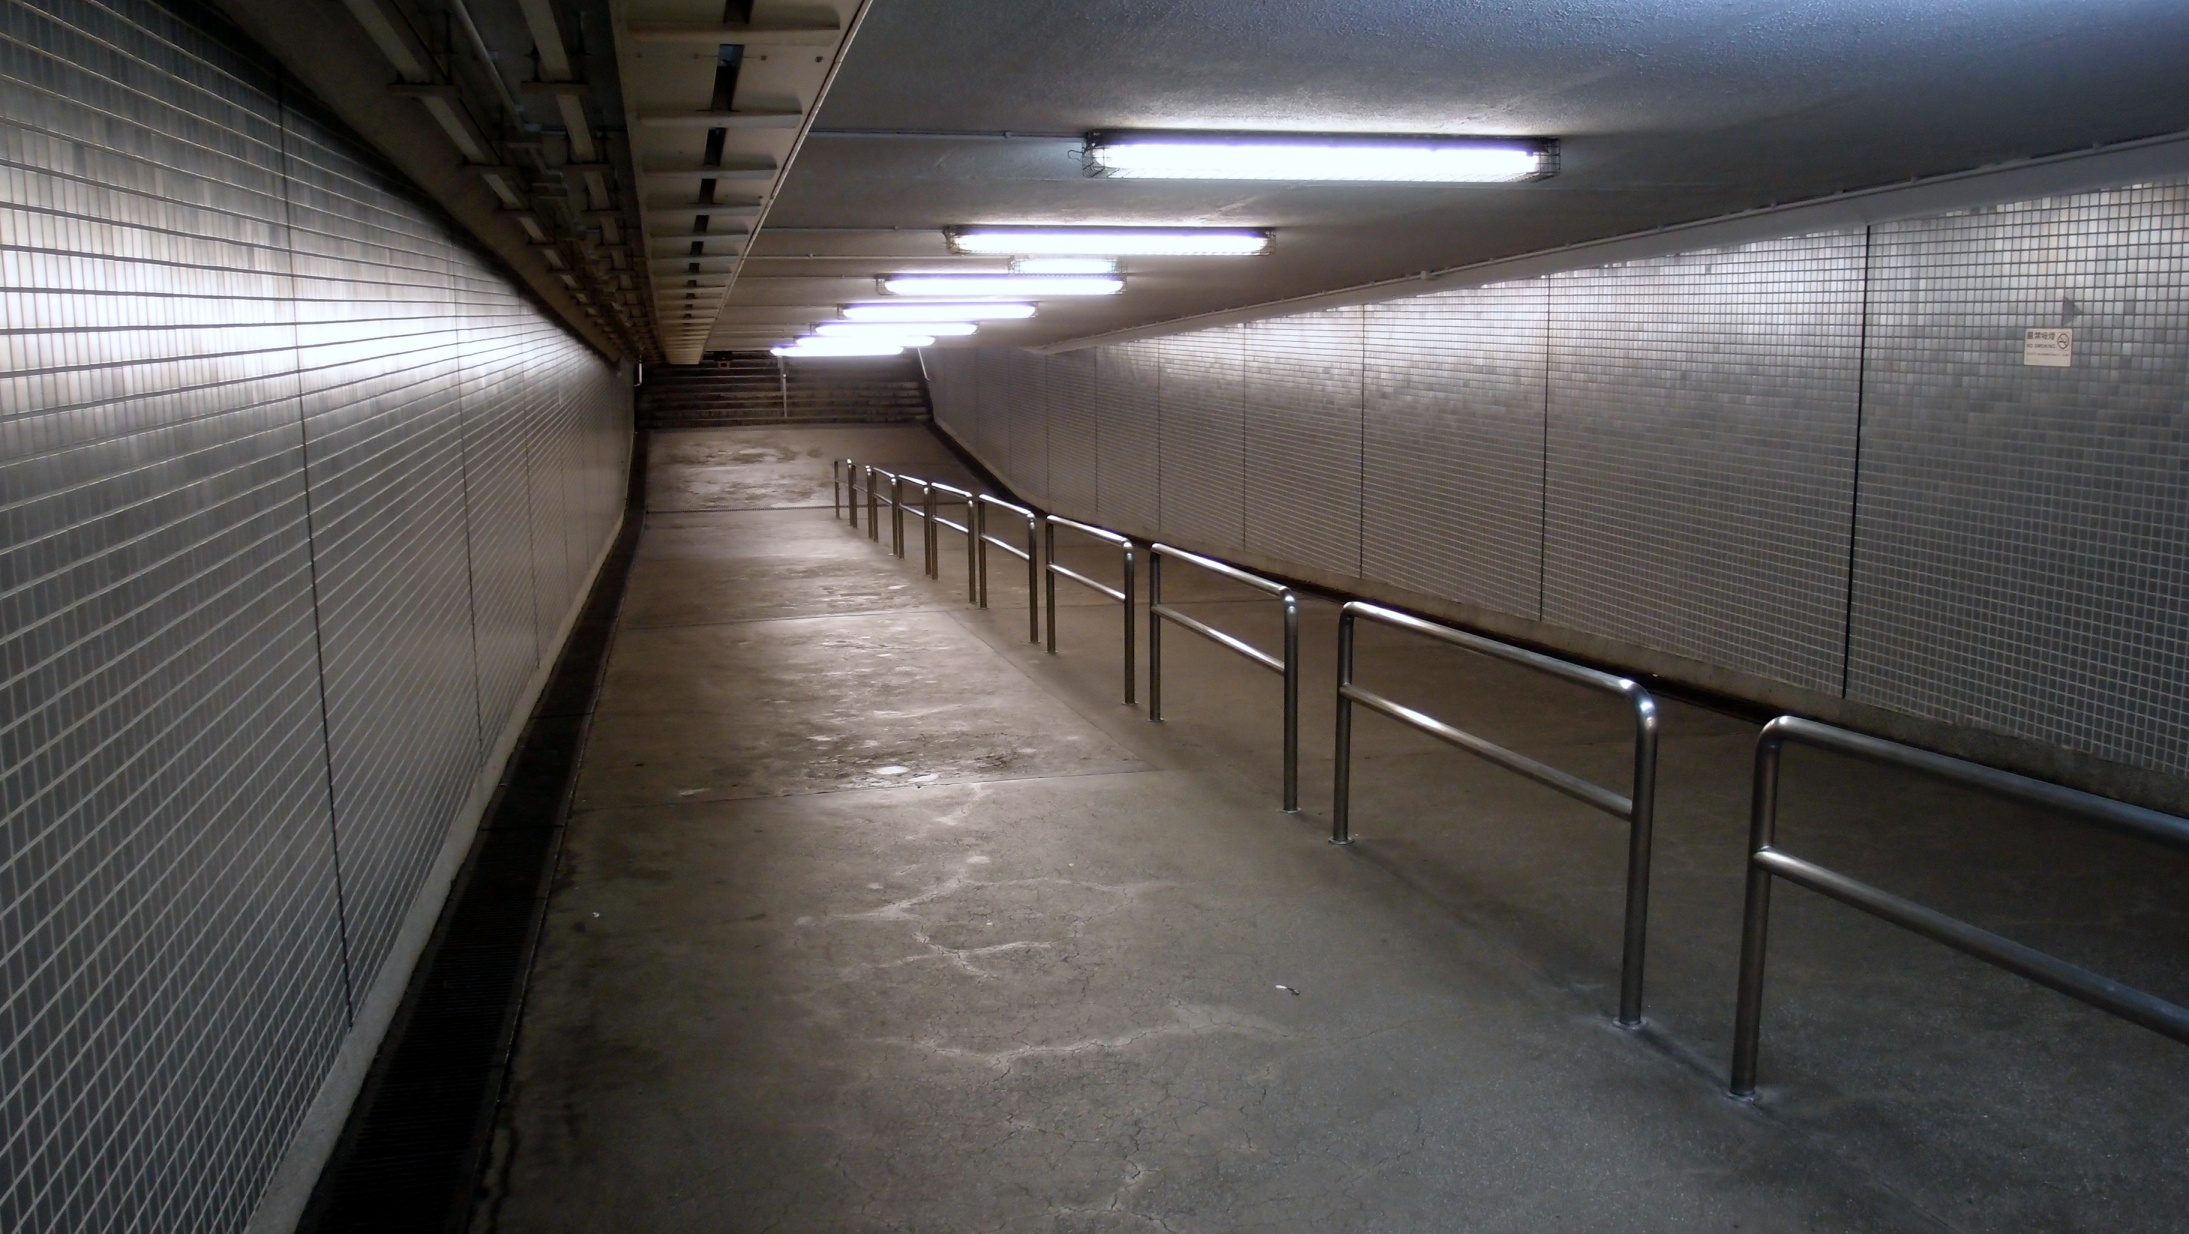 Our very safe subways